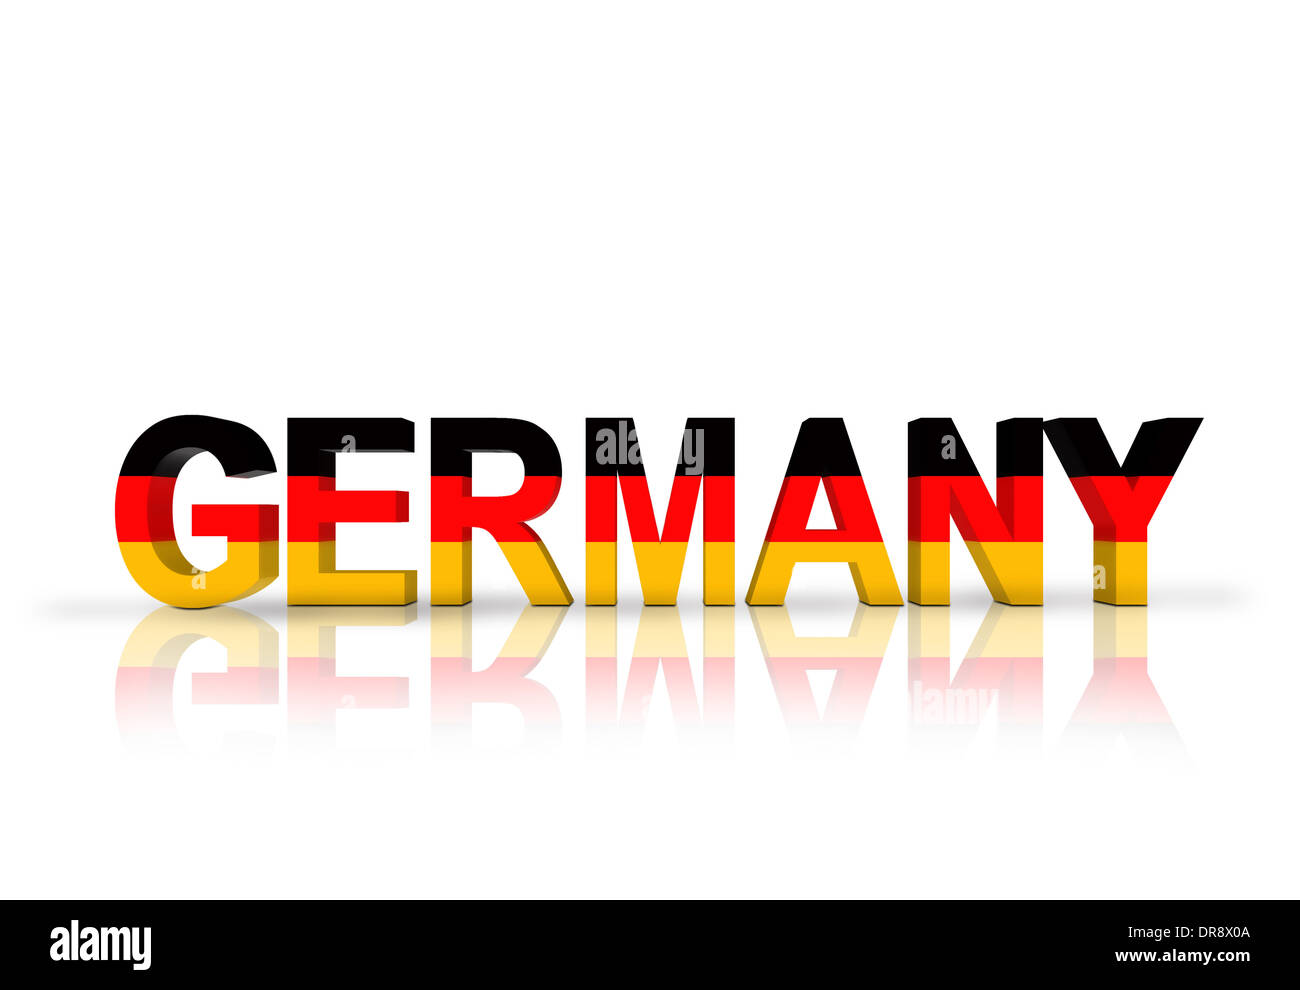 Germany text with German flag - Stock Image